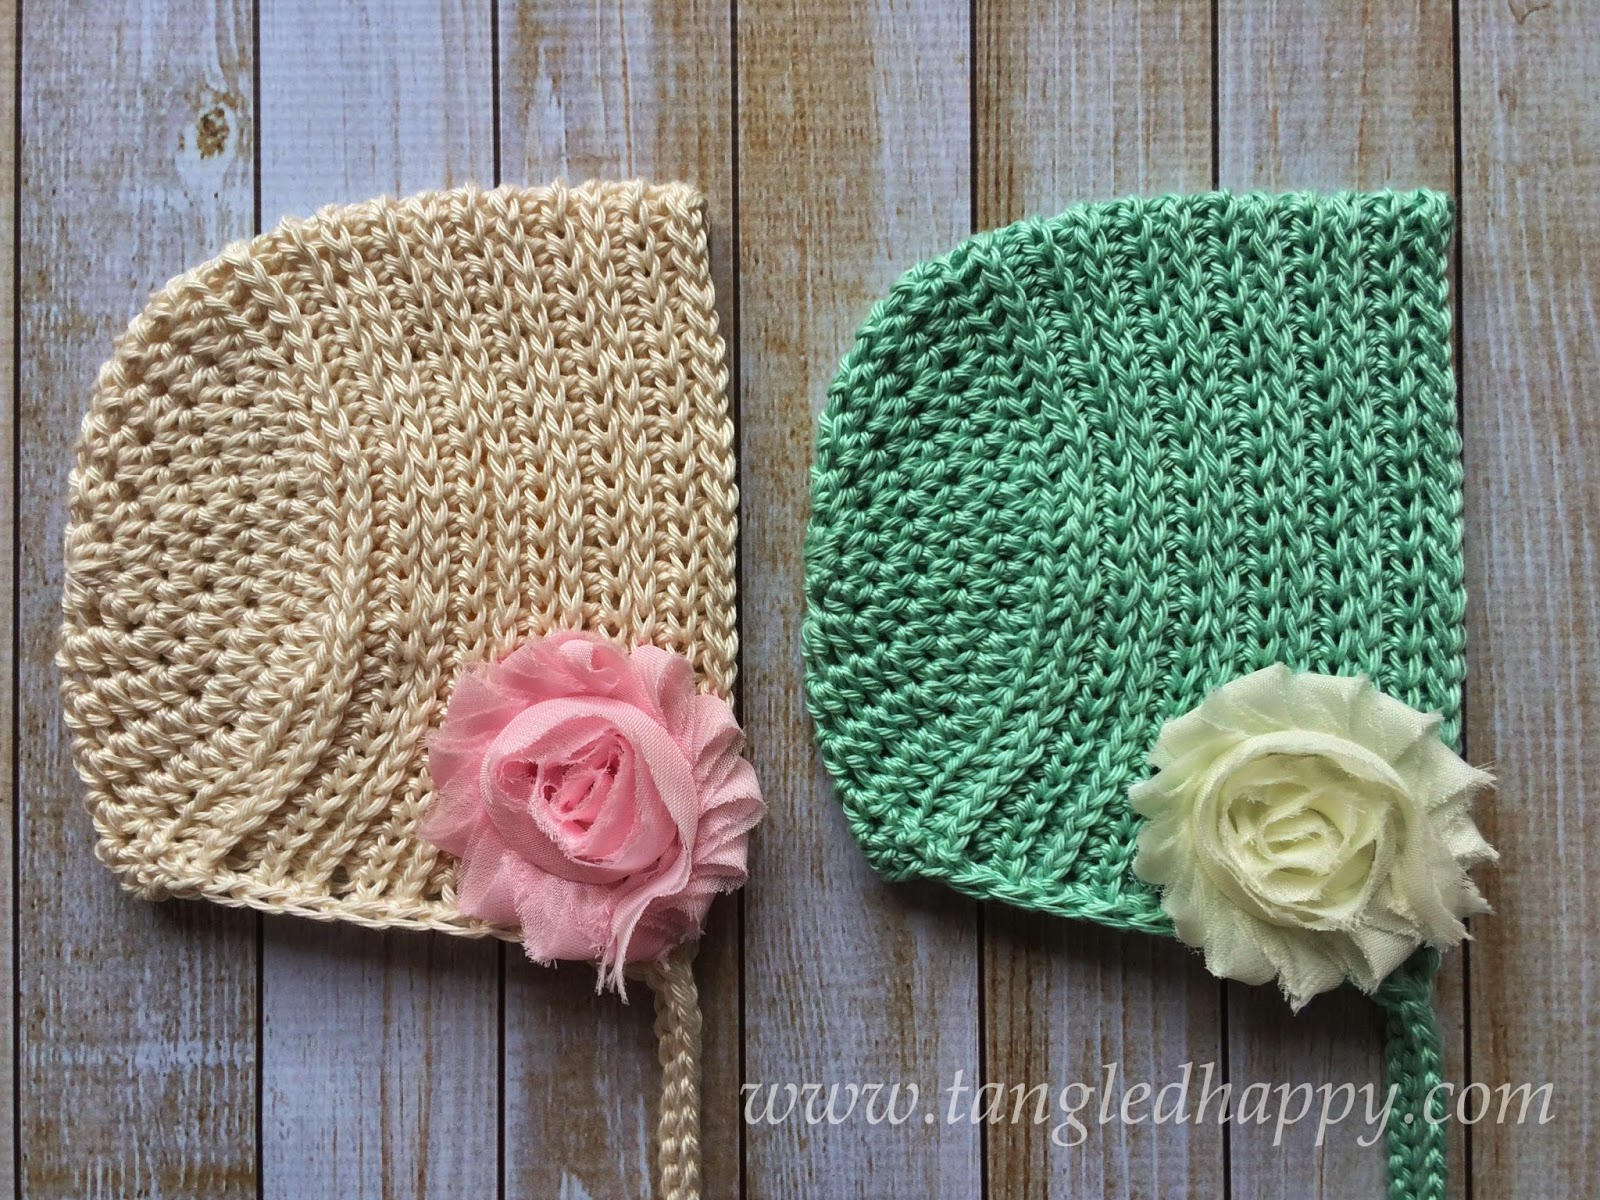 tangled happy: Ribbed Baby Bonnet 0-3 Months {Free Crochet ...